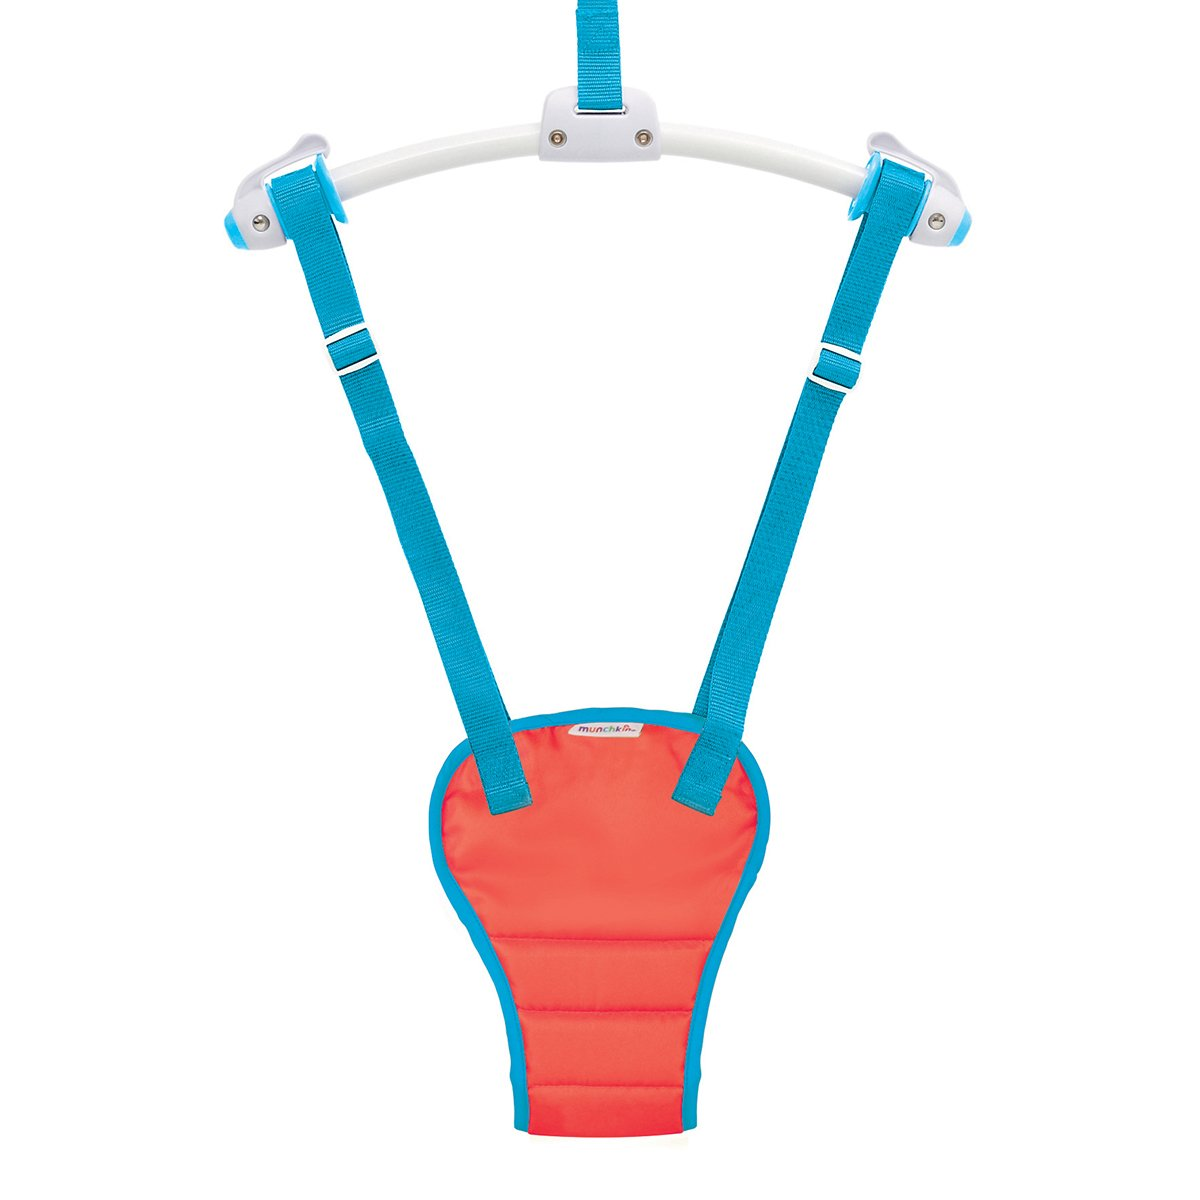 Munchkin Bounce About Baby Door Bouncer - Red/Blue 051566